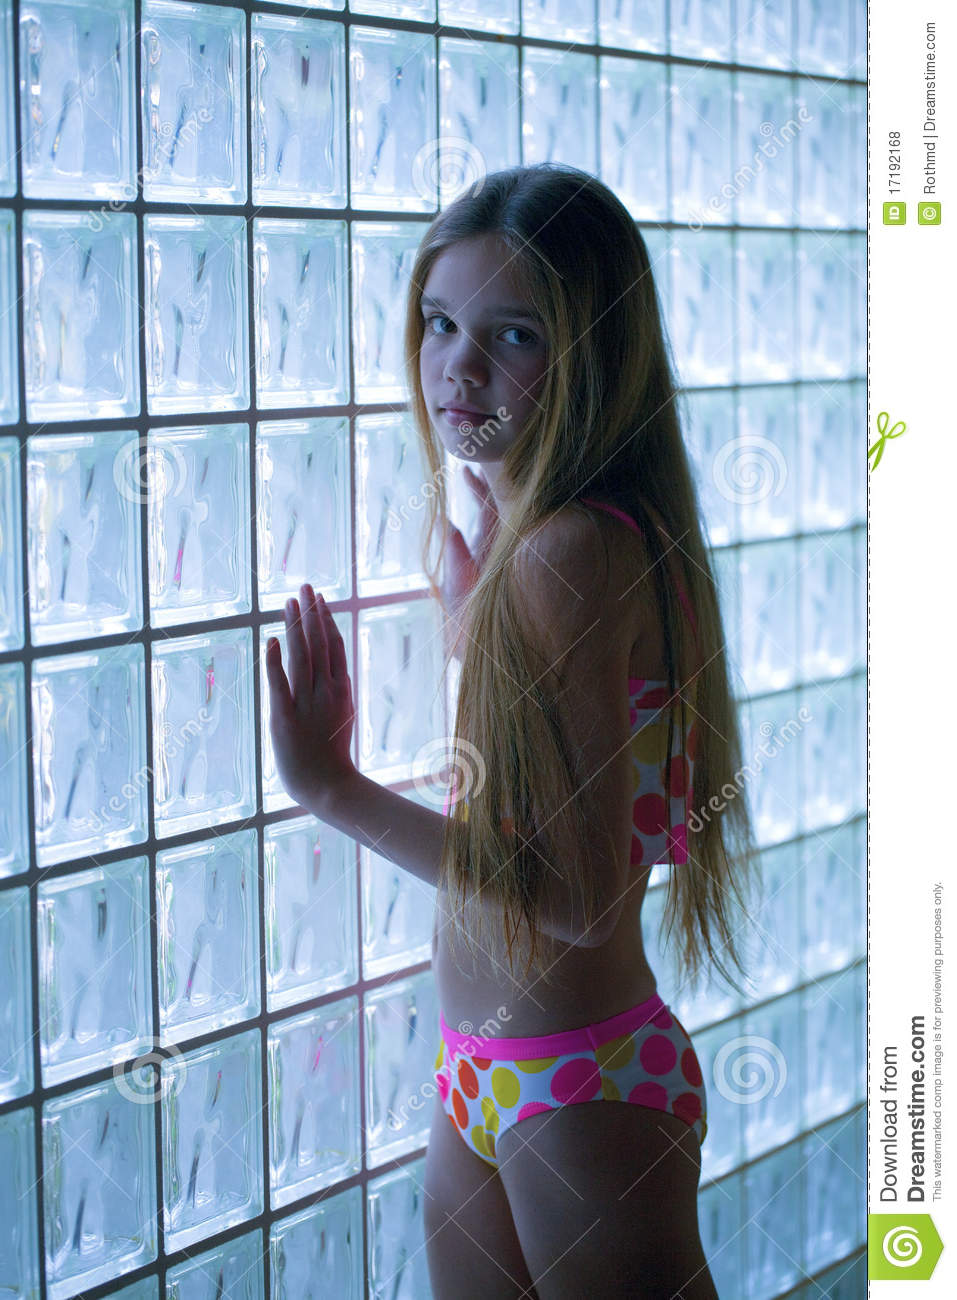 young girl stands by a glass wall wearing a bikini.